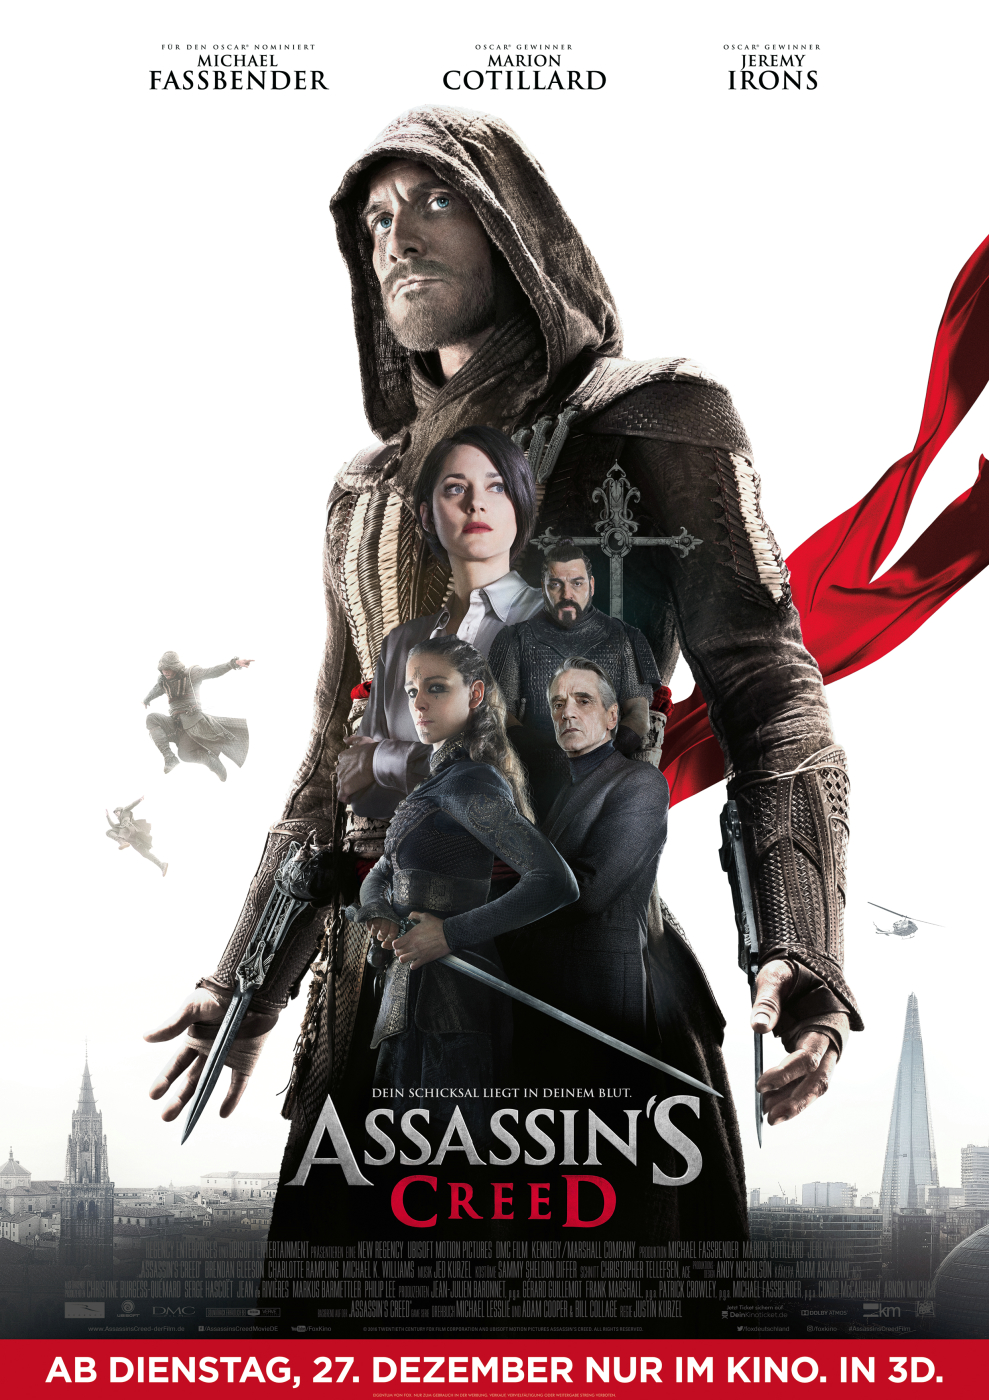 assassinscreed_poster_campd_sundl_low-res